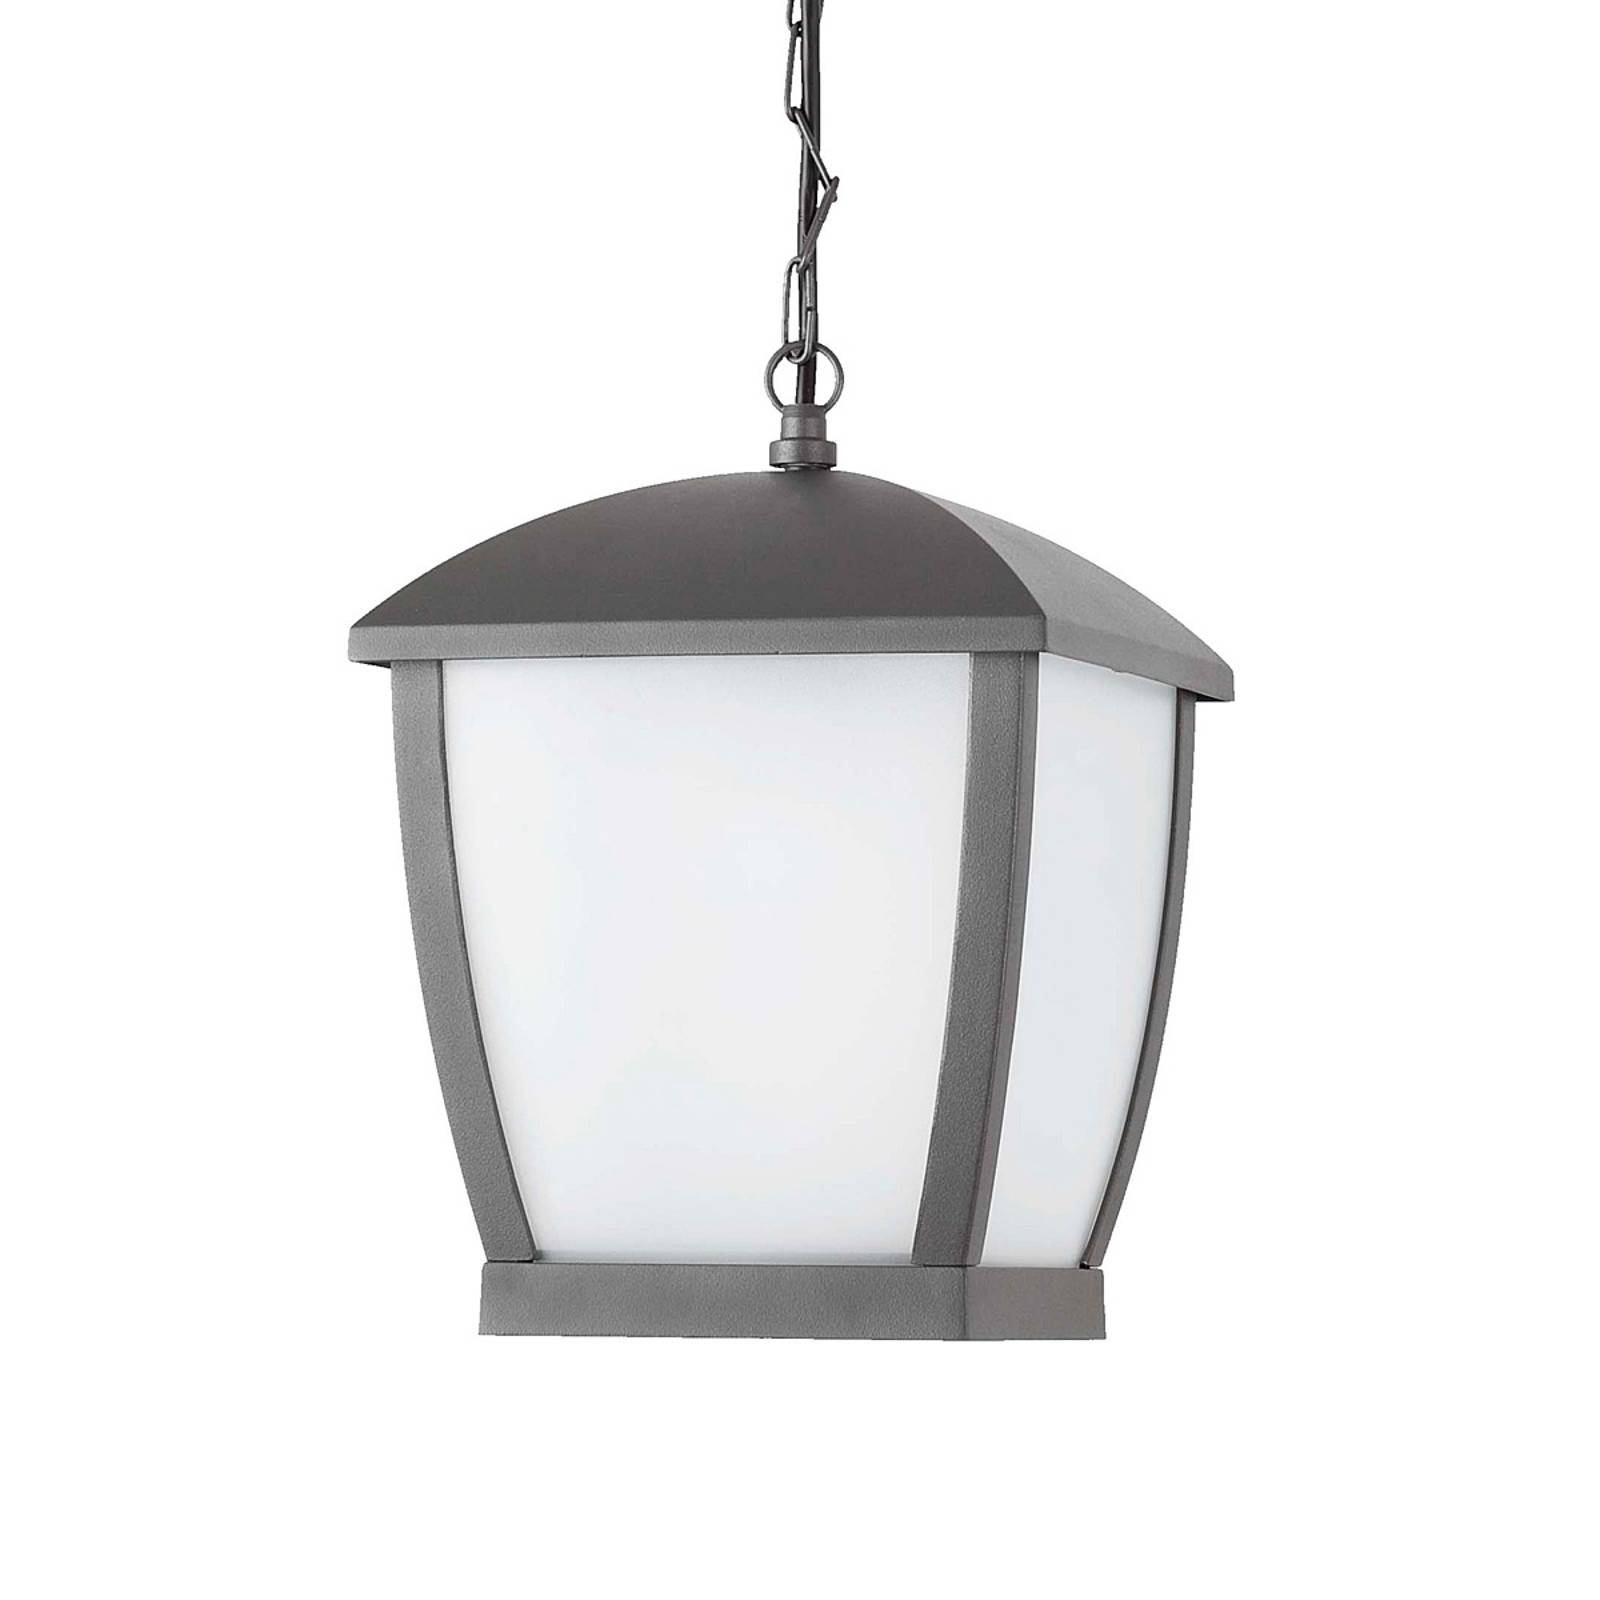 Wilma Stylish Exterior Pendant Lam from FARO BARCELONA